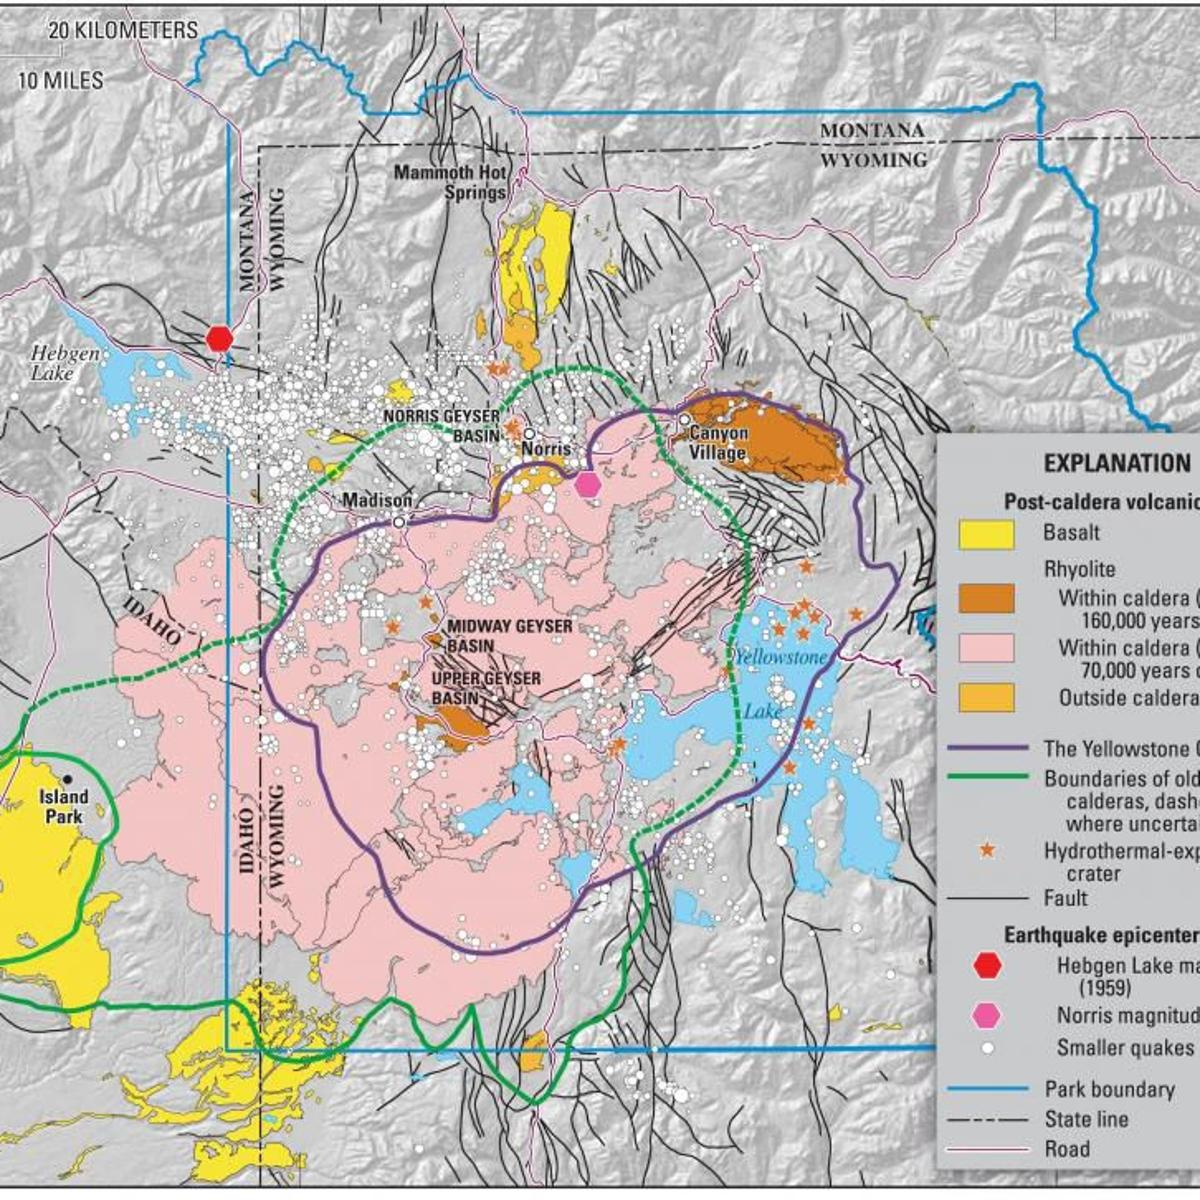 How do we know about the calderas in Yellowstone? | Outdoors ... Yellowstone Supervolcano Eruption Map on yellowstone volcano, ed dames safe zones map, united states volcanoes map, yellowstone state park wisconsin, yellowstone supervolcano volume, yellowstone eruption ash cloud map, yellowstone in early may, mt. rainier eruption map, yellowstone supervolcano size, yellowstone explosion, mount saint helens eruption map, yellowstone overdue to erupt, yellowstone caldera damage predictions, yellowstone about to erupt, active volcano united states map, yellowstone supervolcano radius, us national parks map, yellowstone eruption prediction map, volcano eruption map,